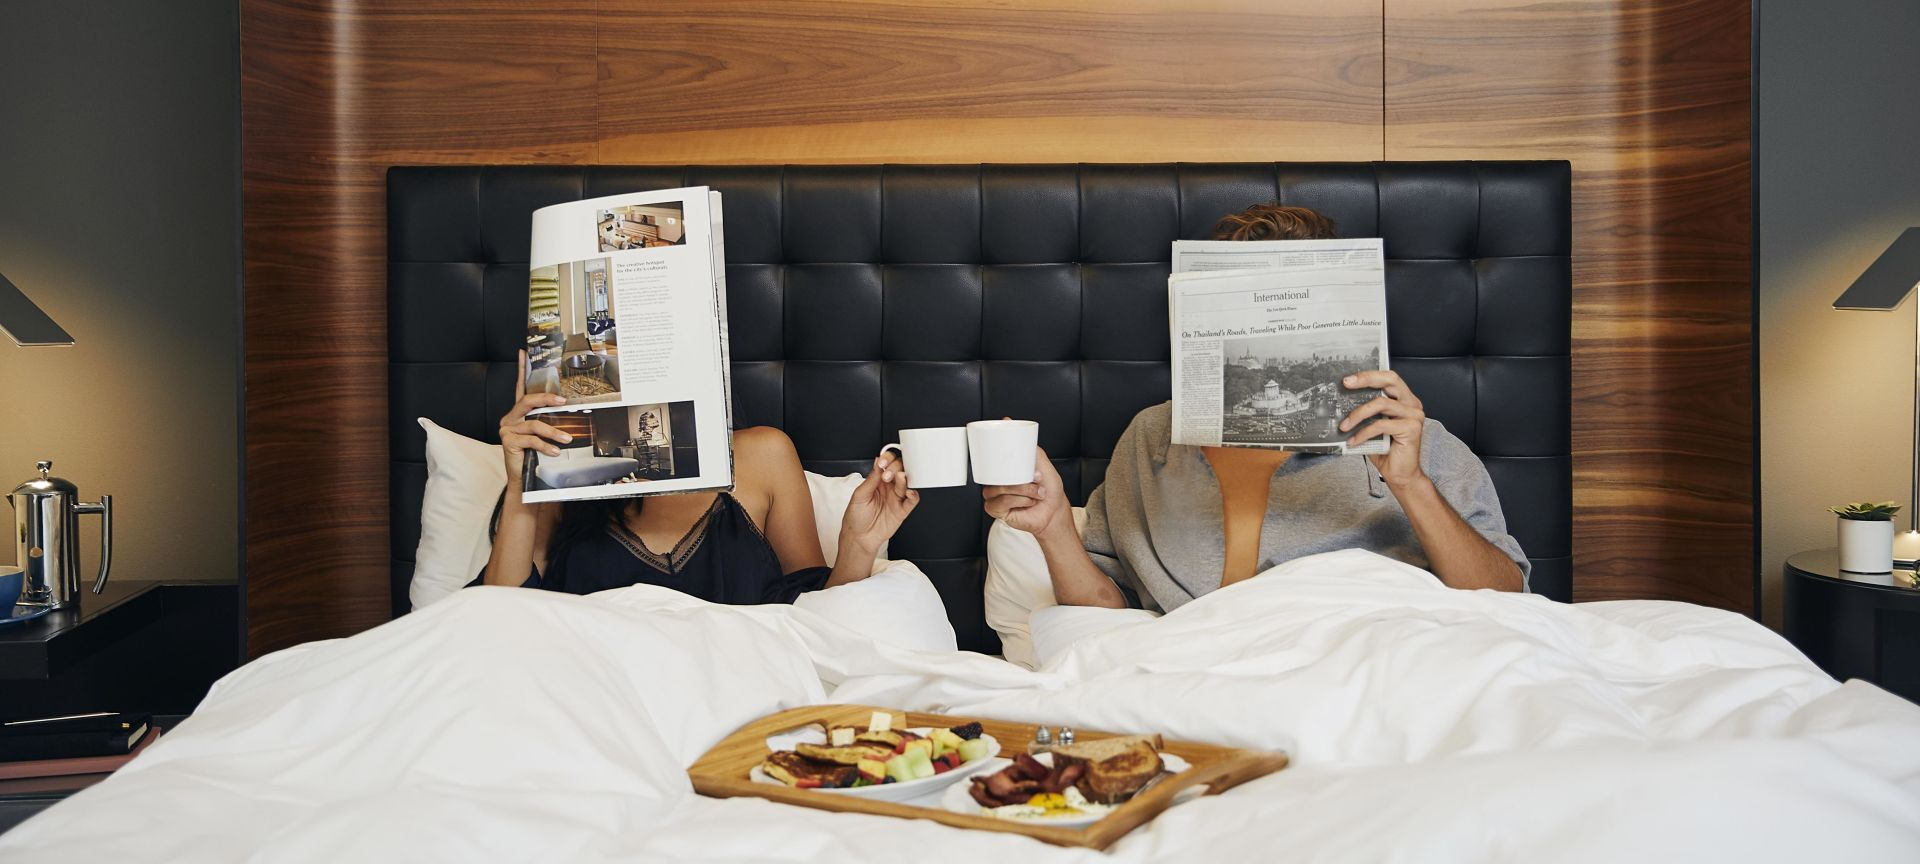 A Couple in Bed with Breakfast and Reading